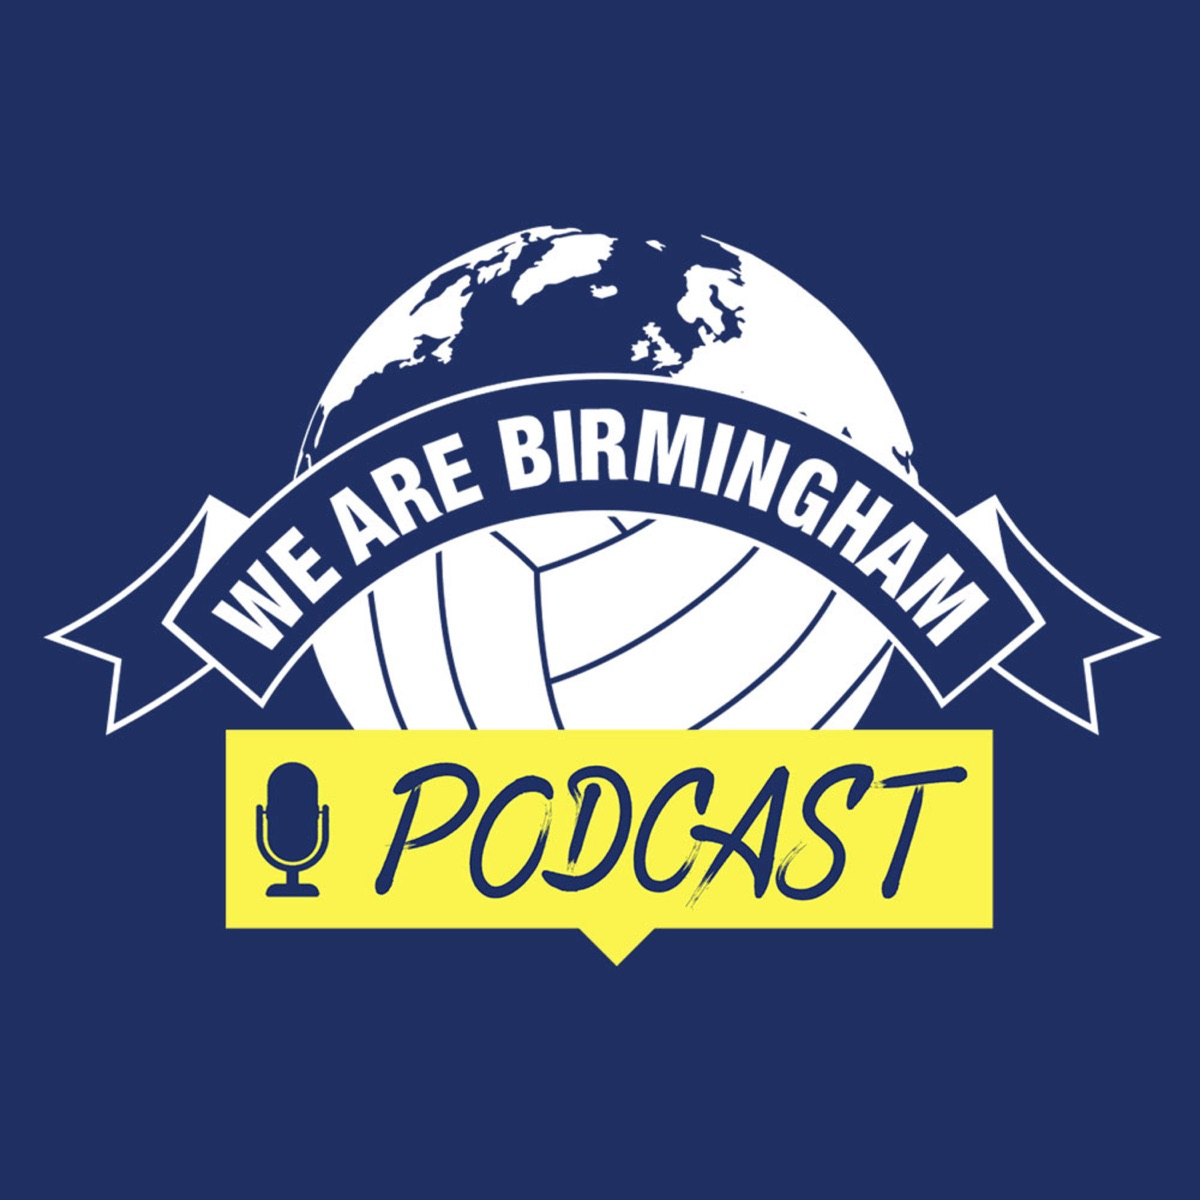 We Are Birmingham Podcast